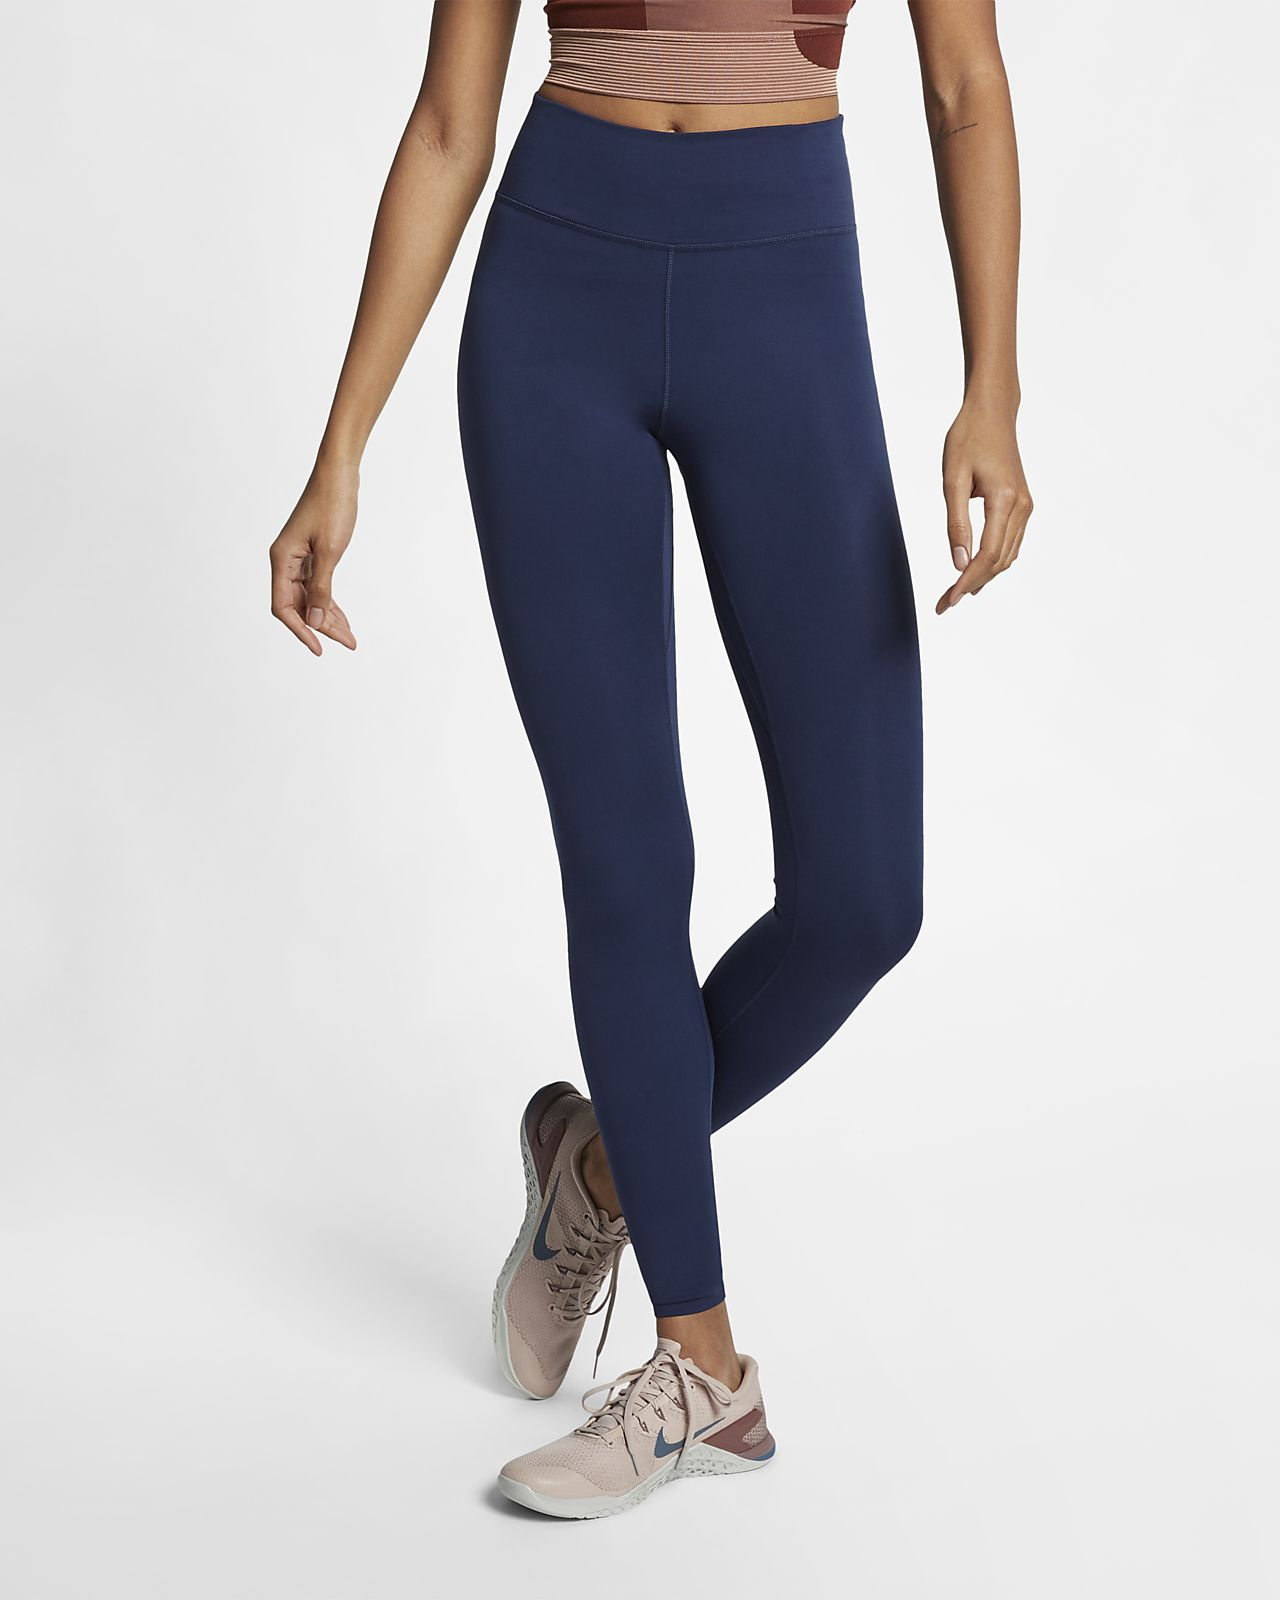 Tights Nike One Luxe para mulher